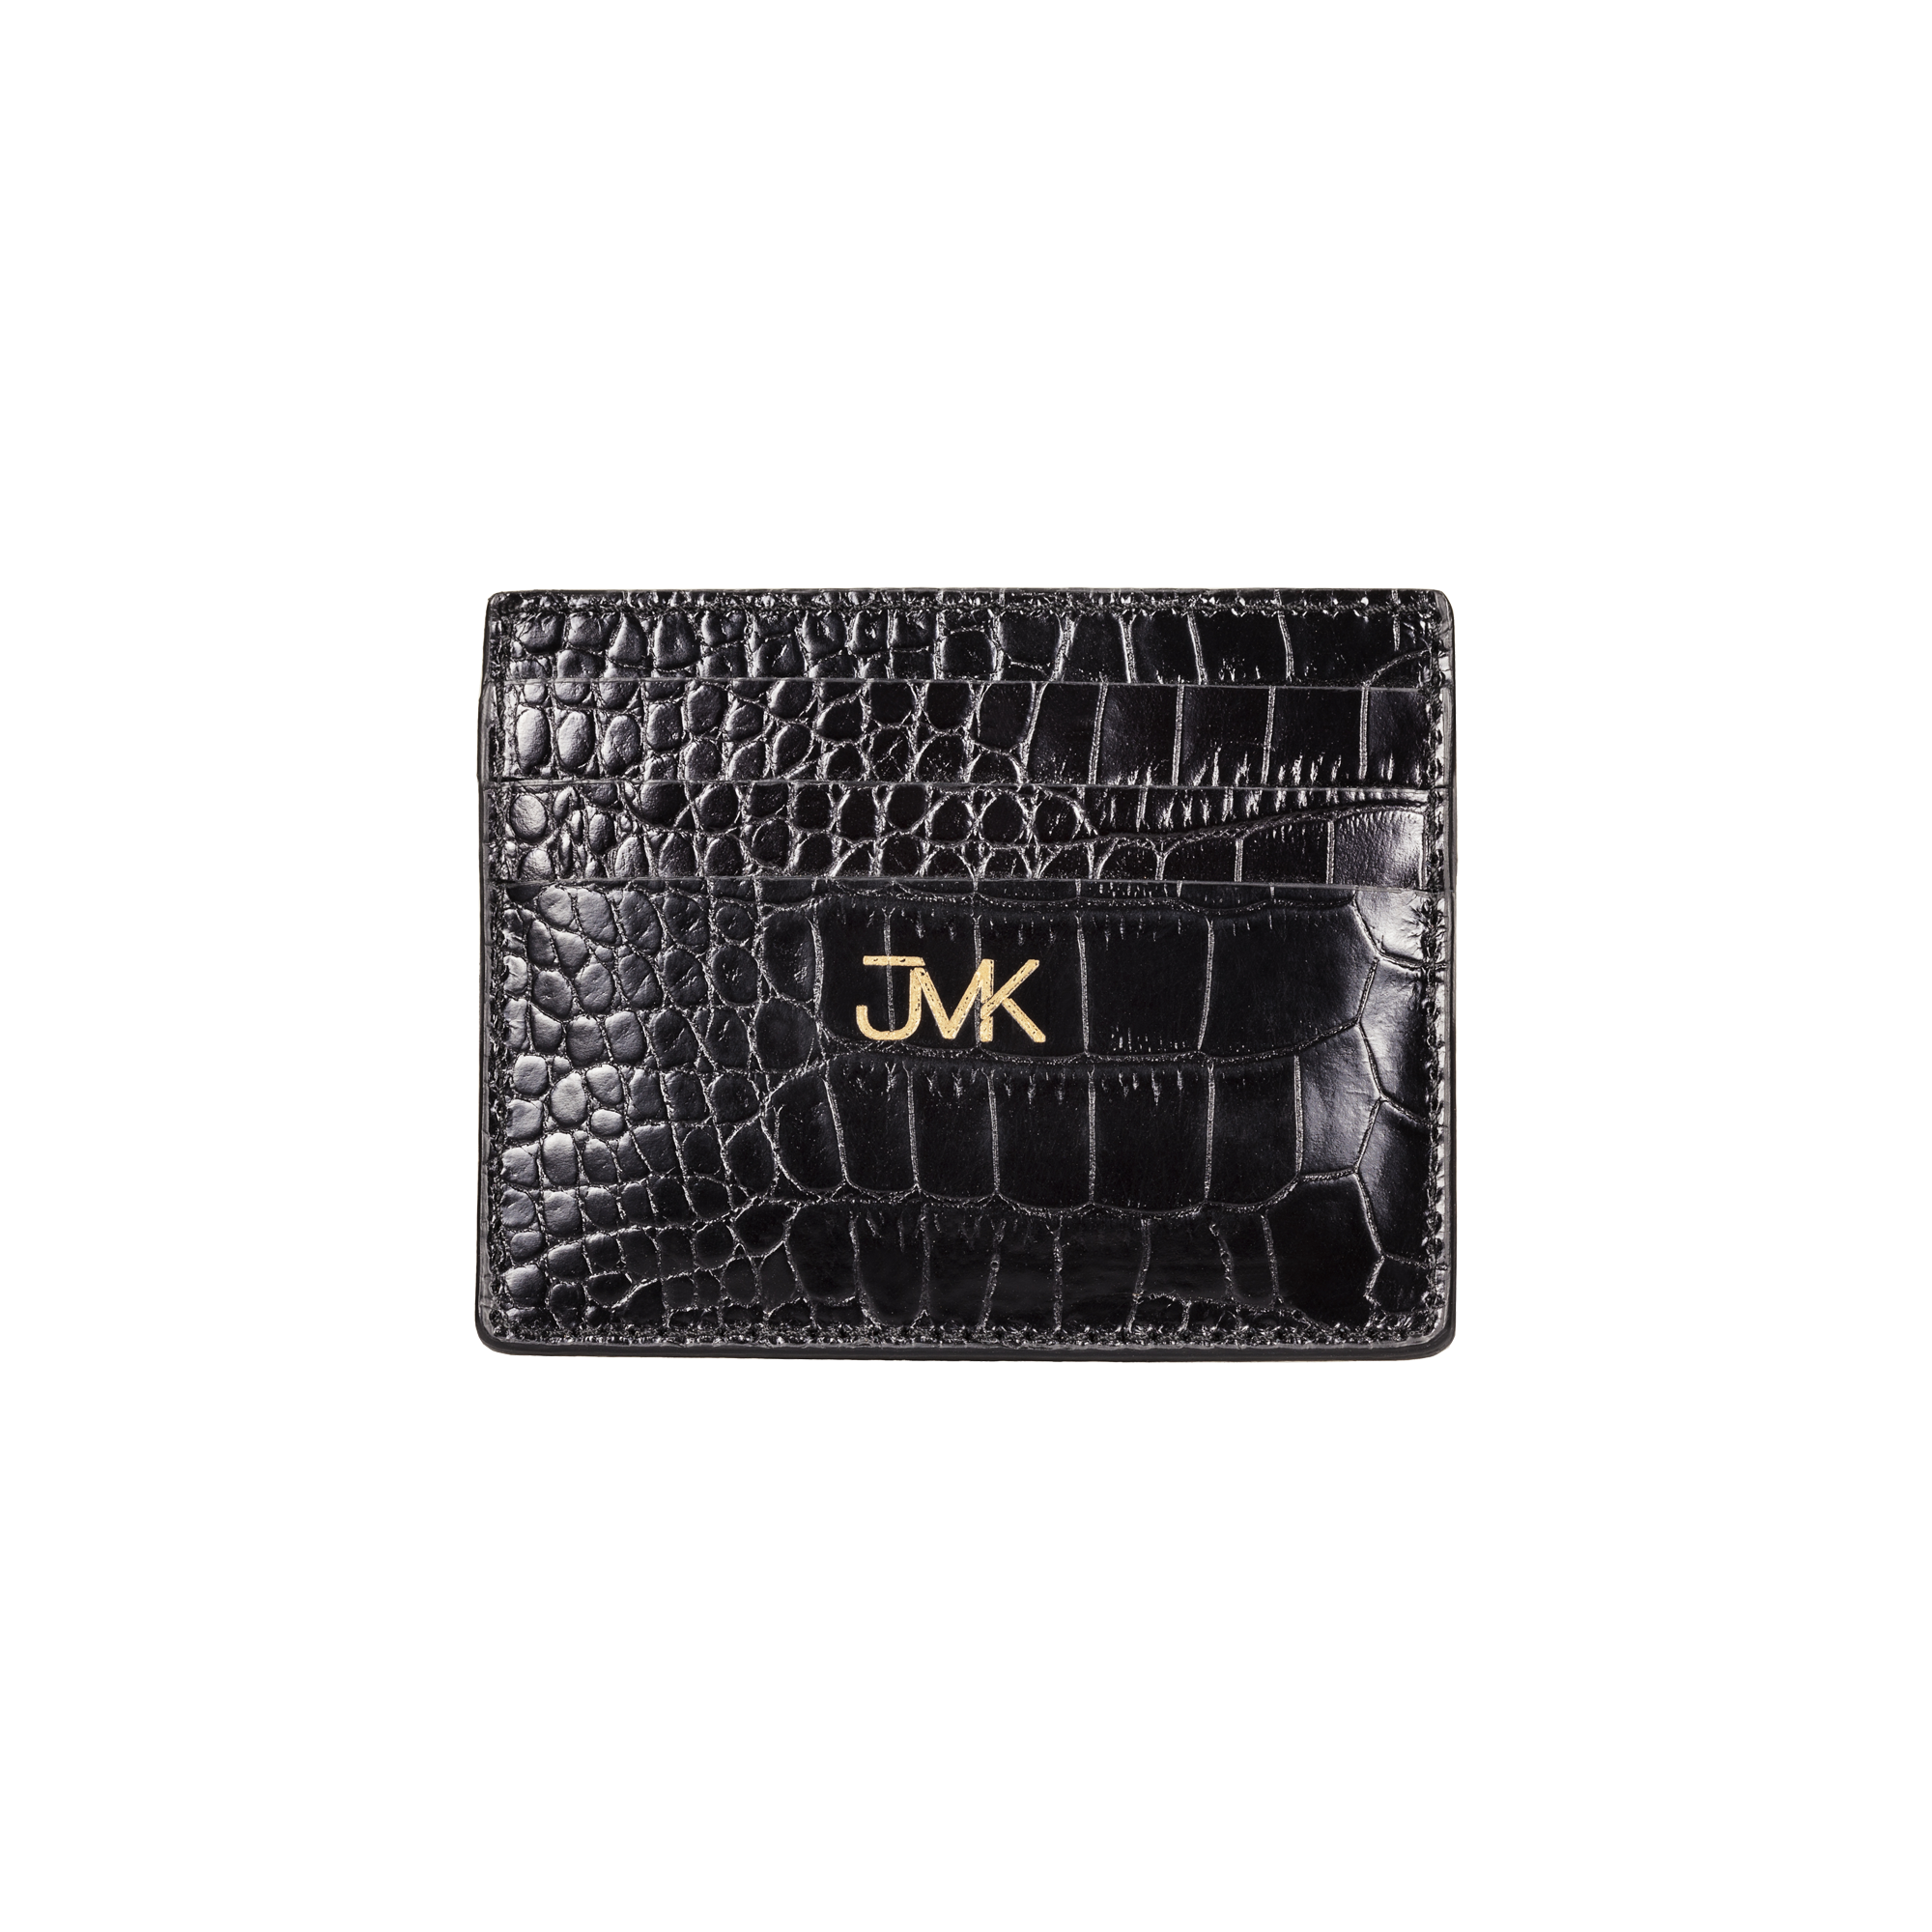 Card Holder - 6 Slots, Croco Leather Black/Black, MAISON JMK-VONMEL Luxe Gifts